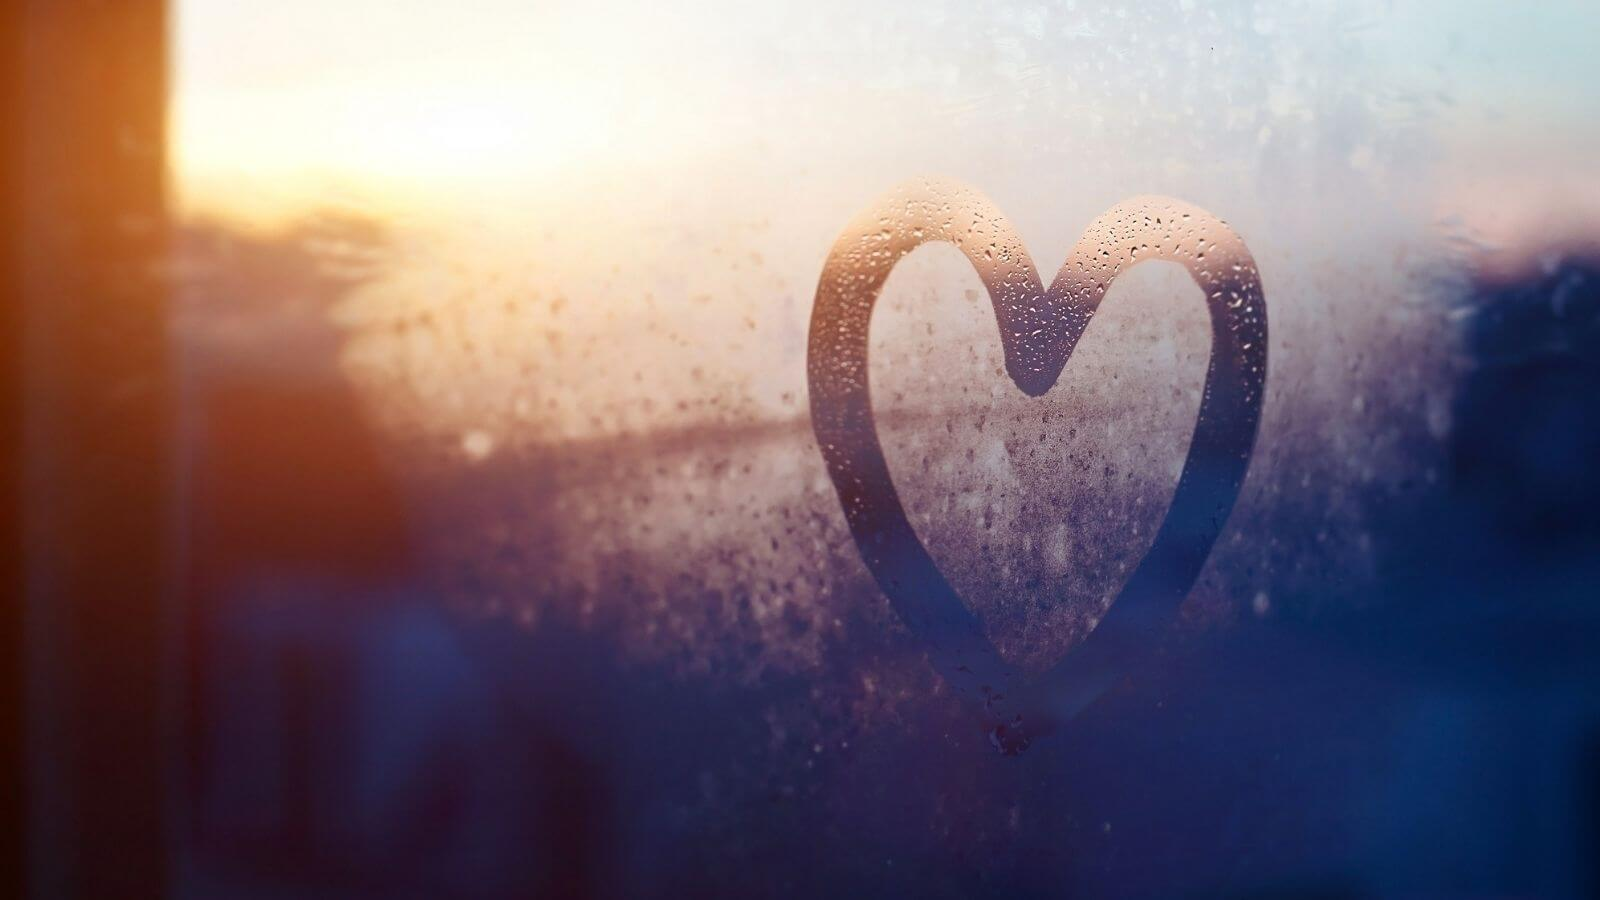 Kindness Heart Drawn On Window in Condensation